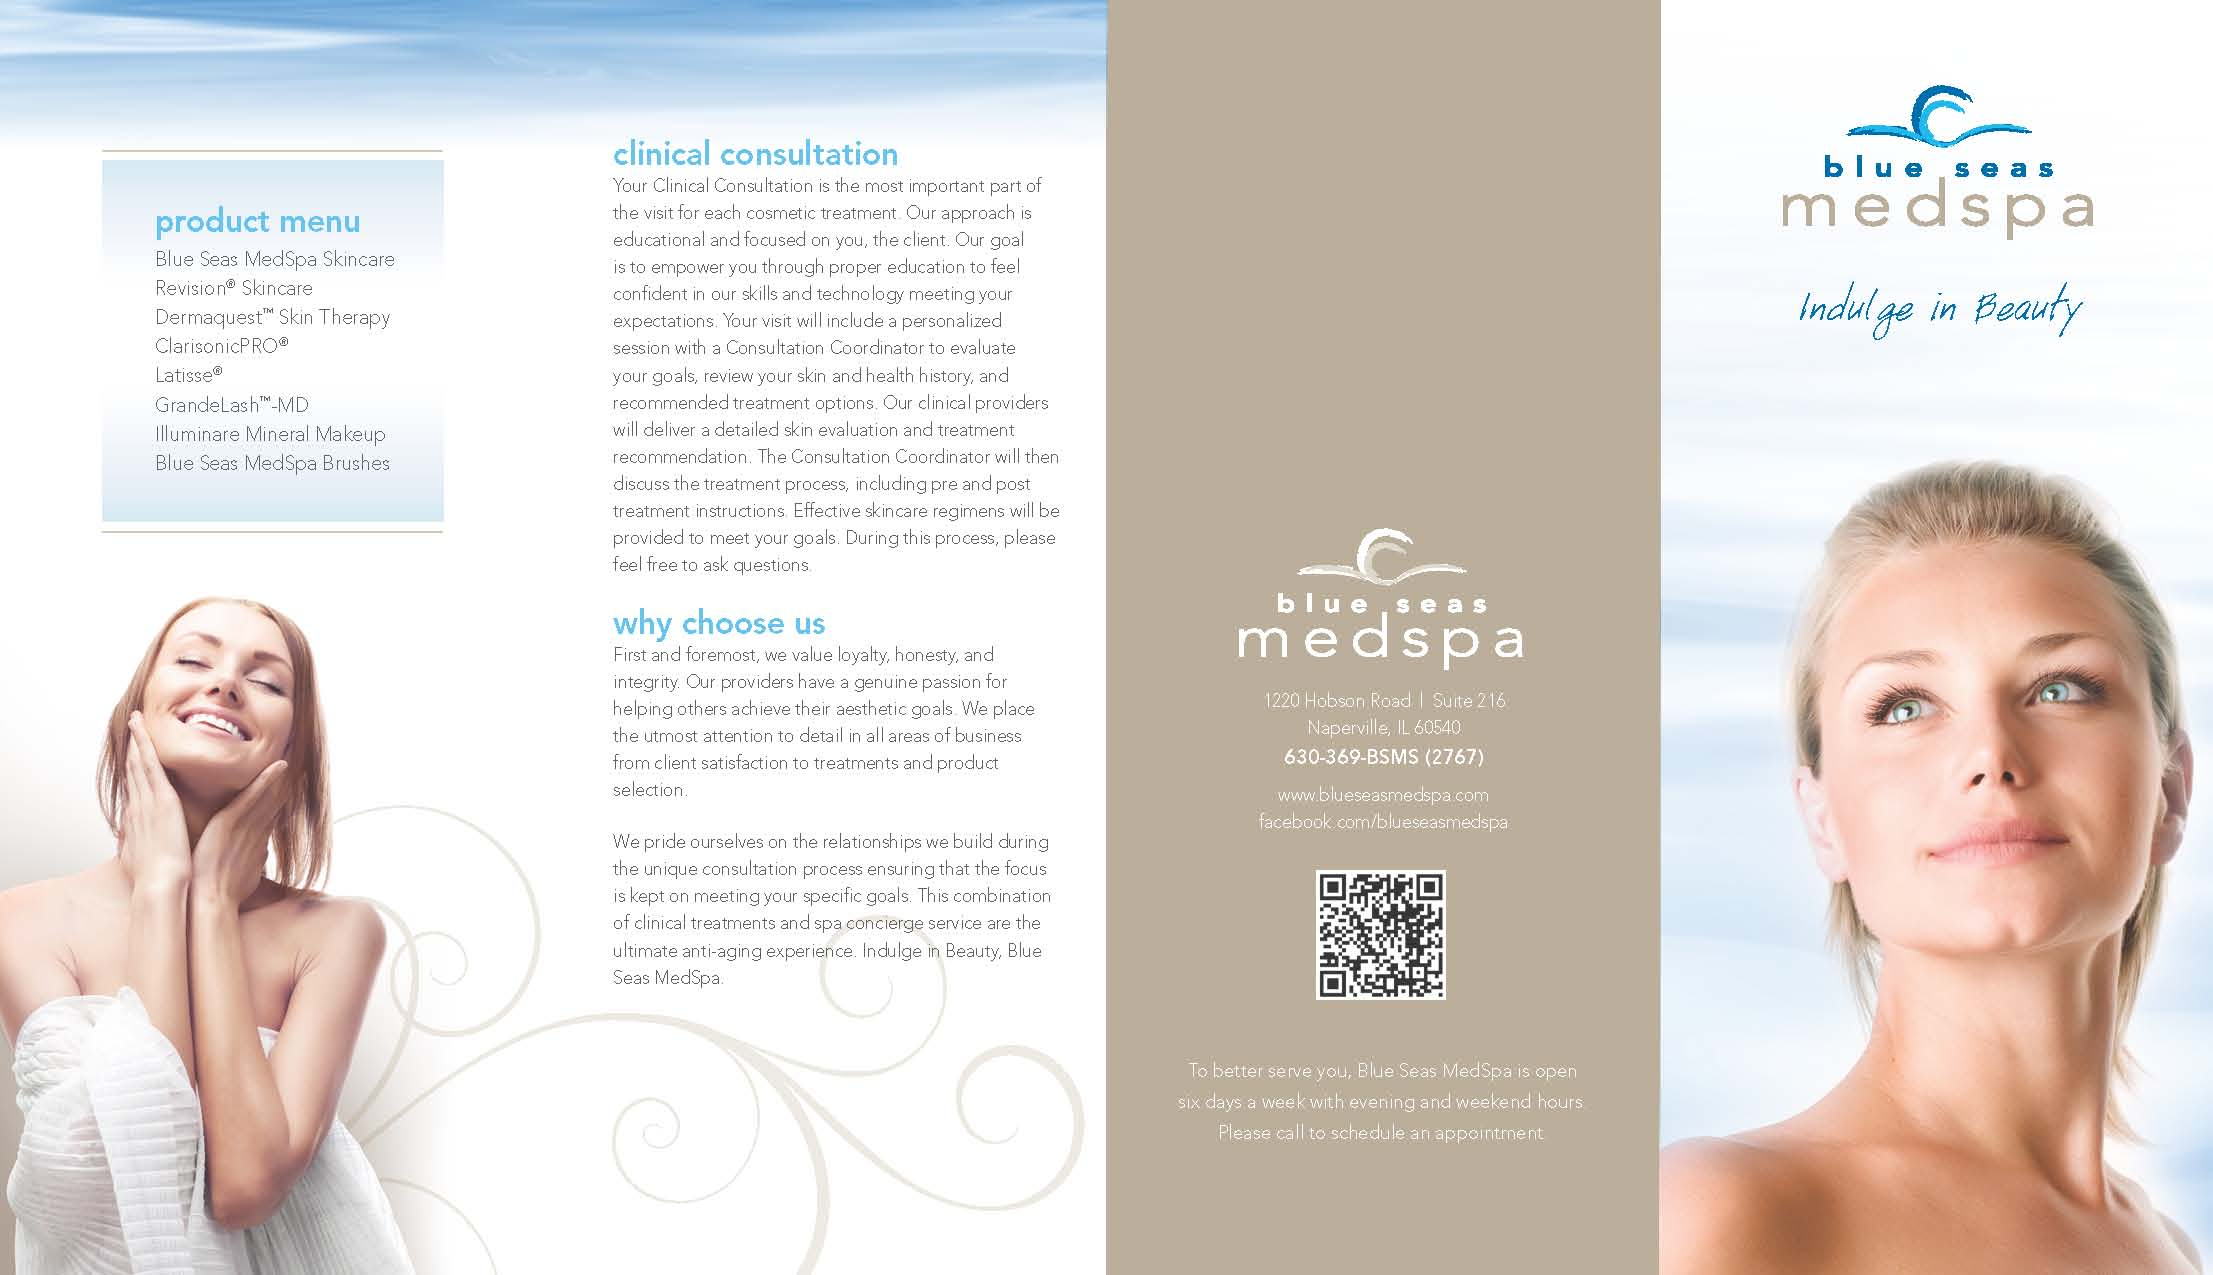 Medical Spa And Gynecology